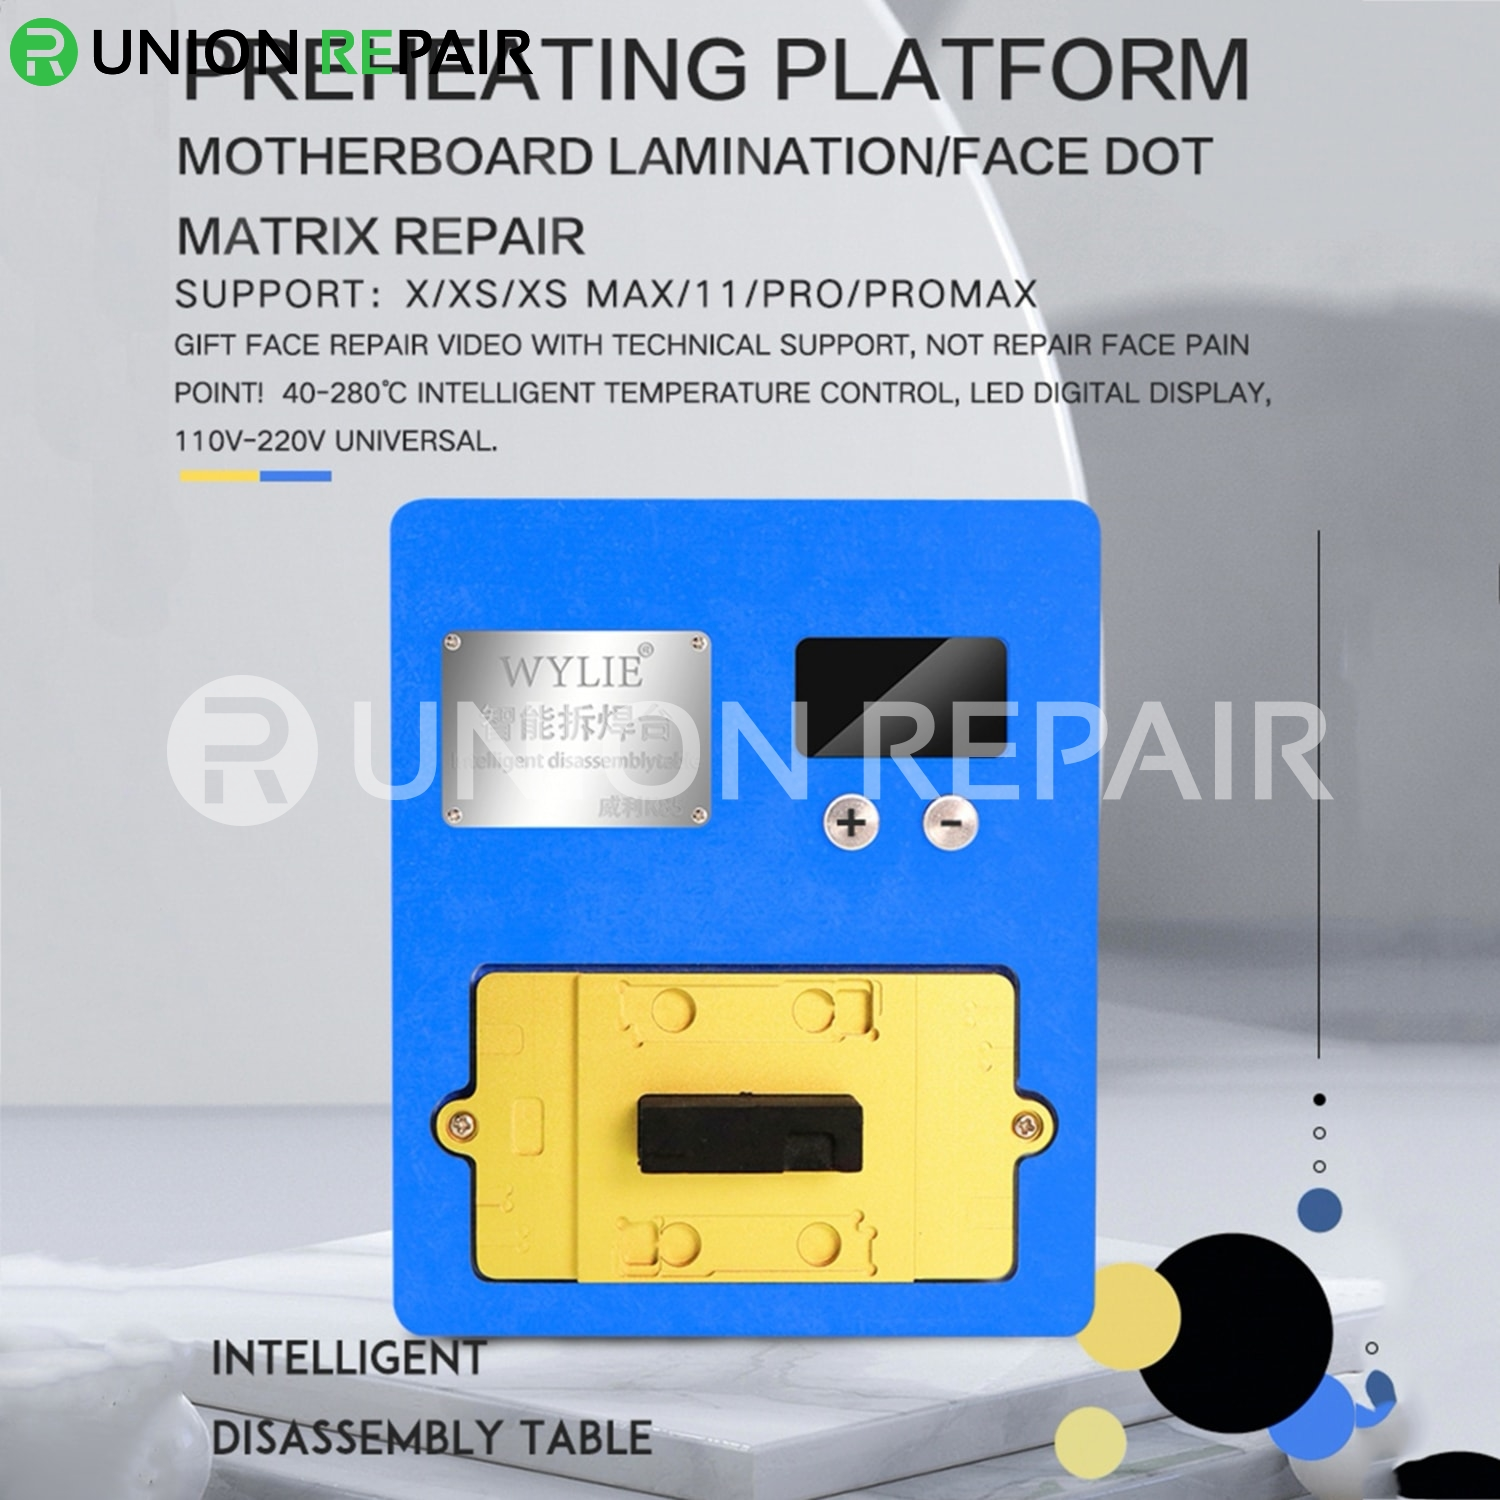 WYLIE K85 Preheating Platform for iPhone Motherboard Face Dot Matrix Repair